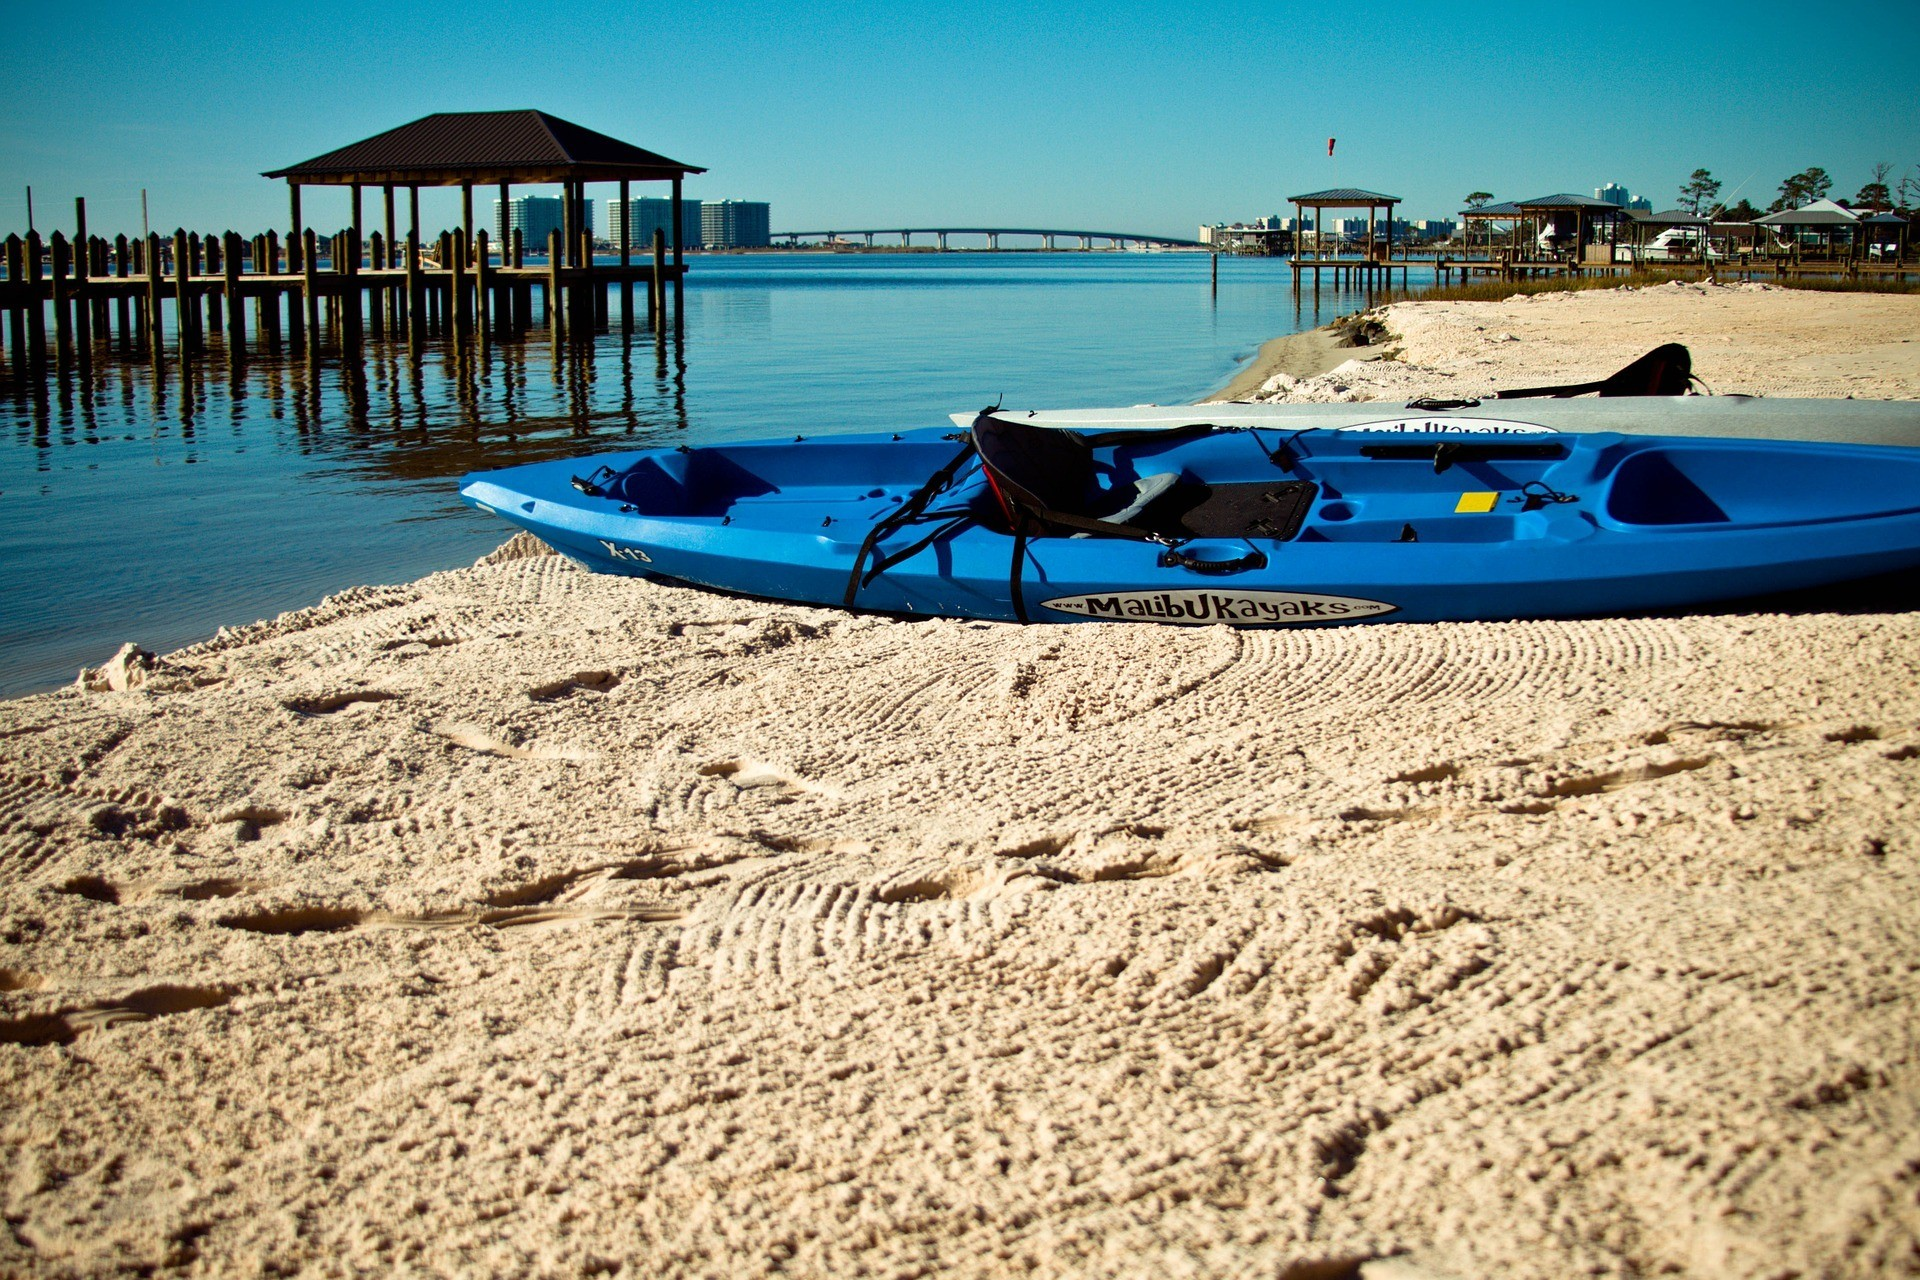 How to Pedal Kayak on the Ocean